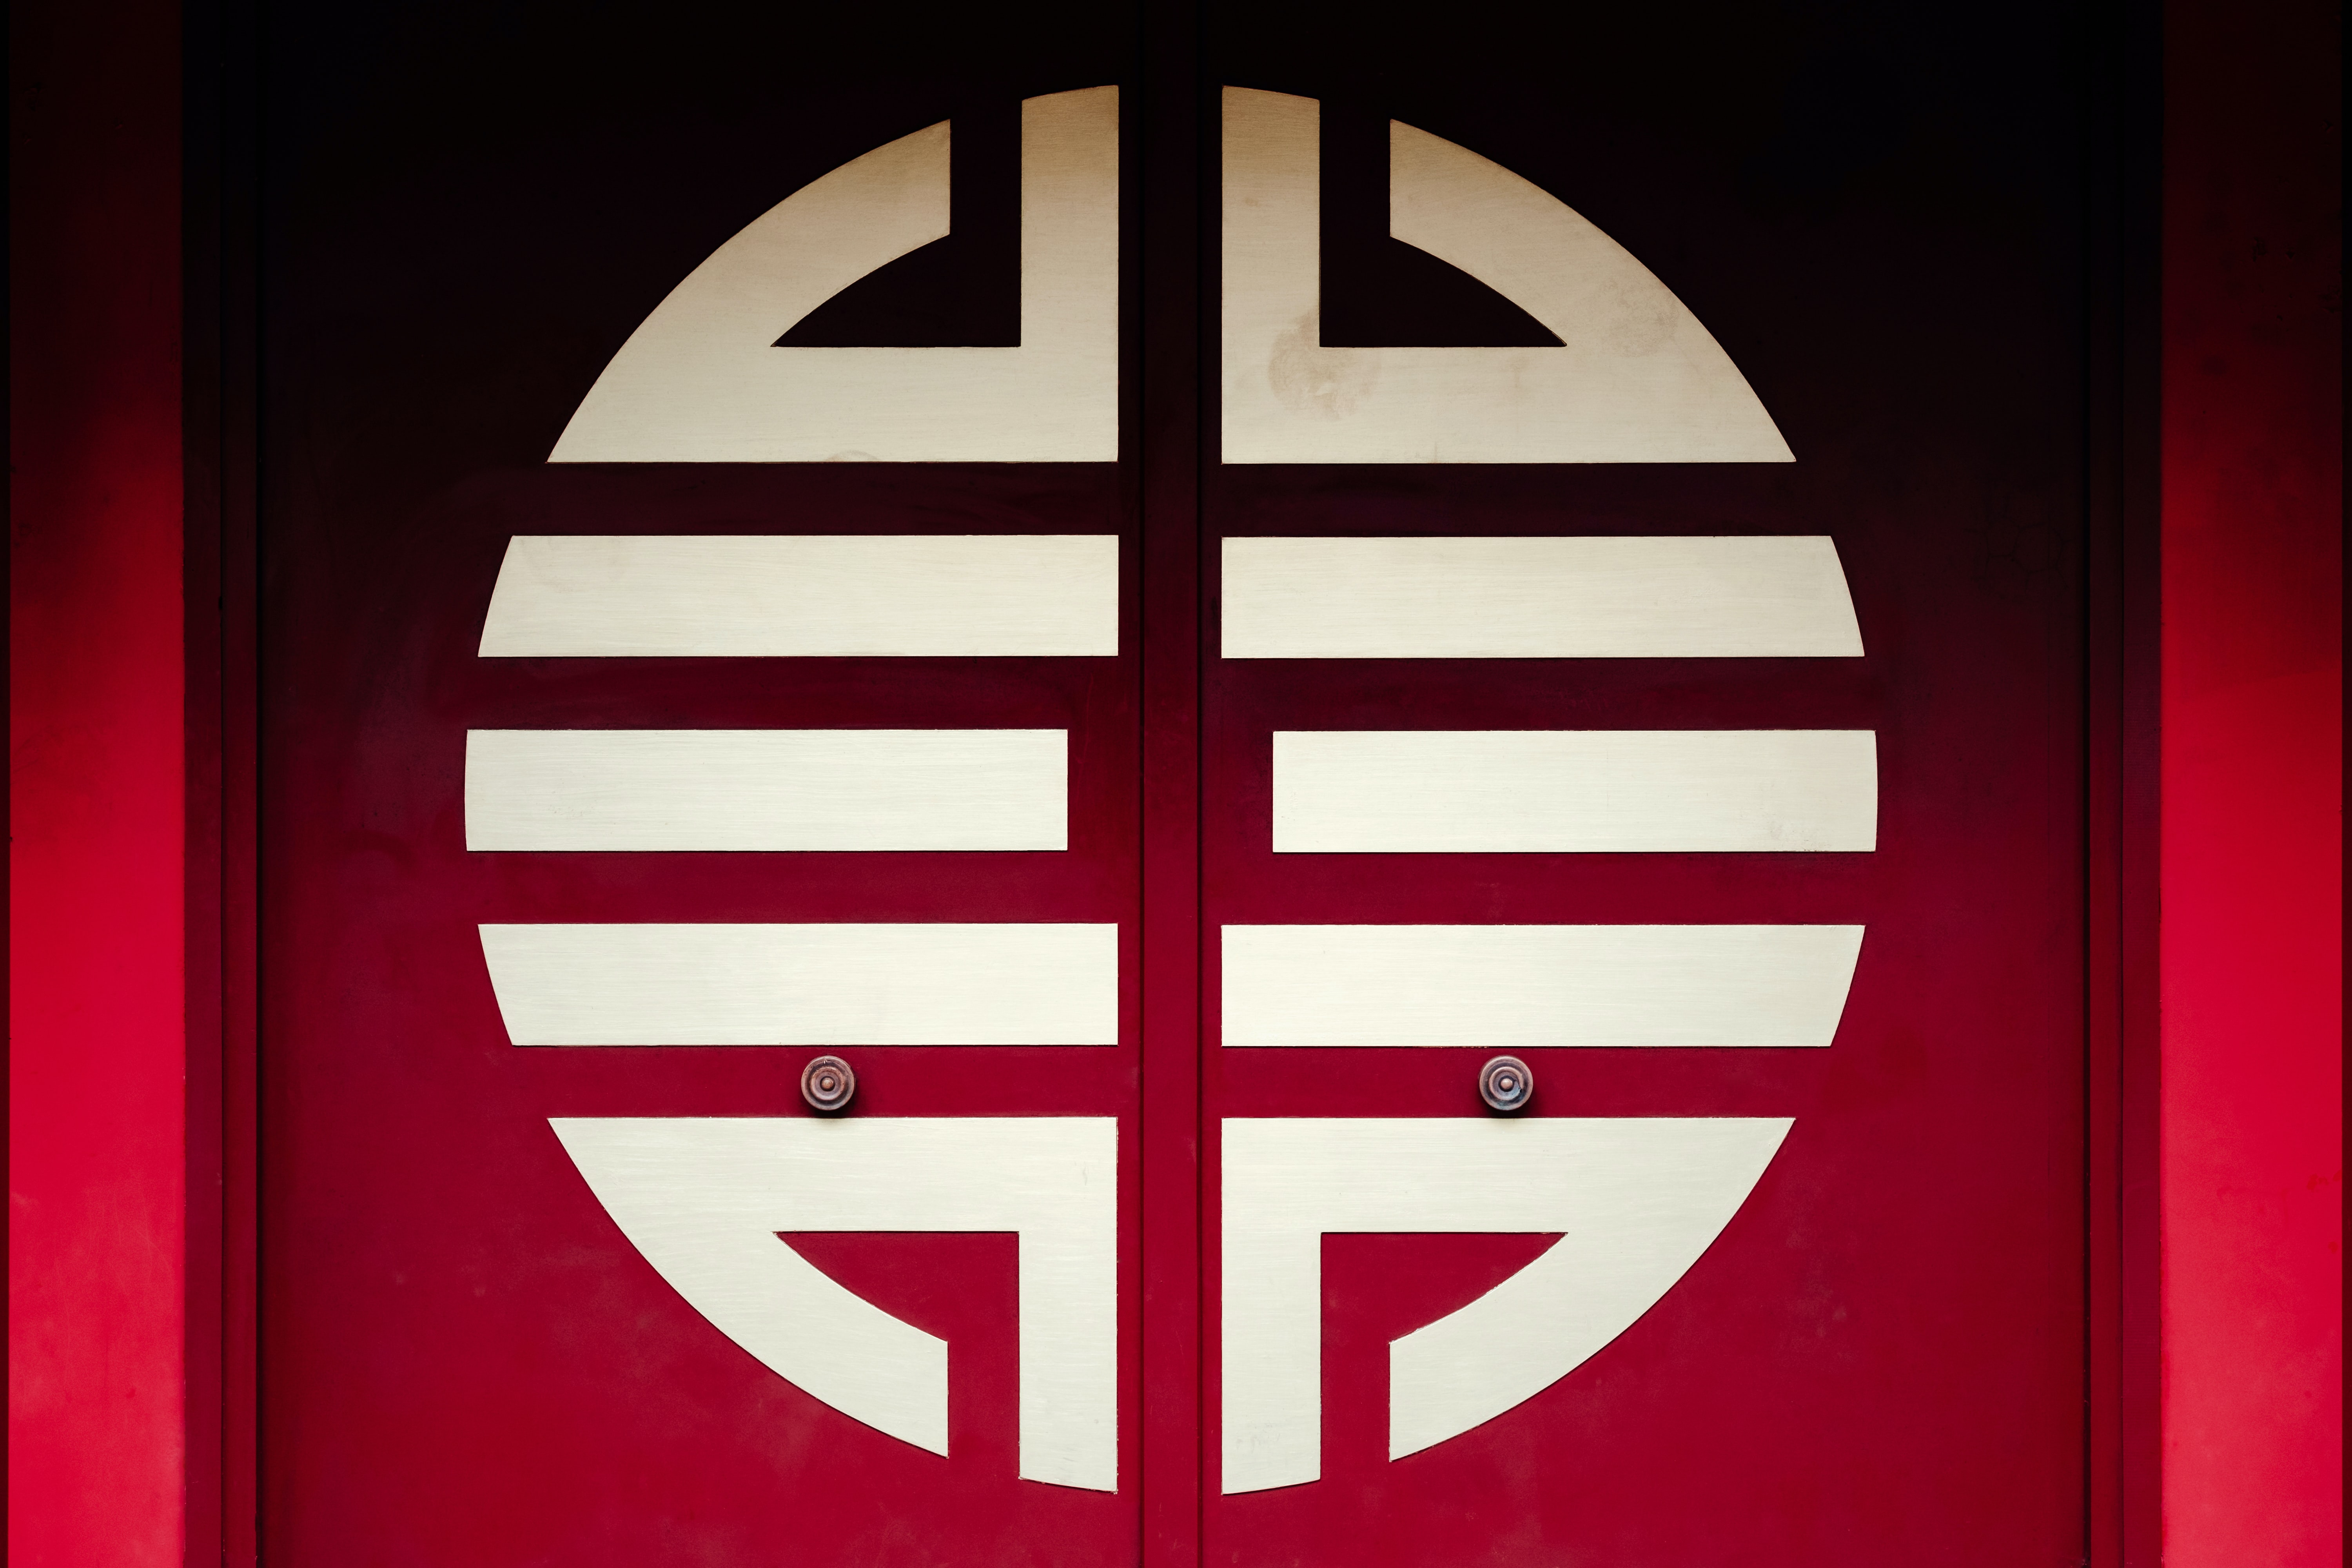 Chinese happiness symbol on red doors.